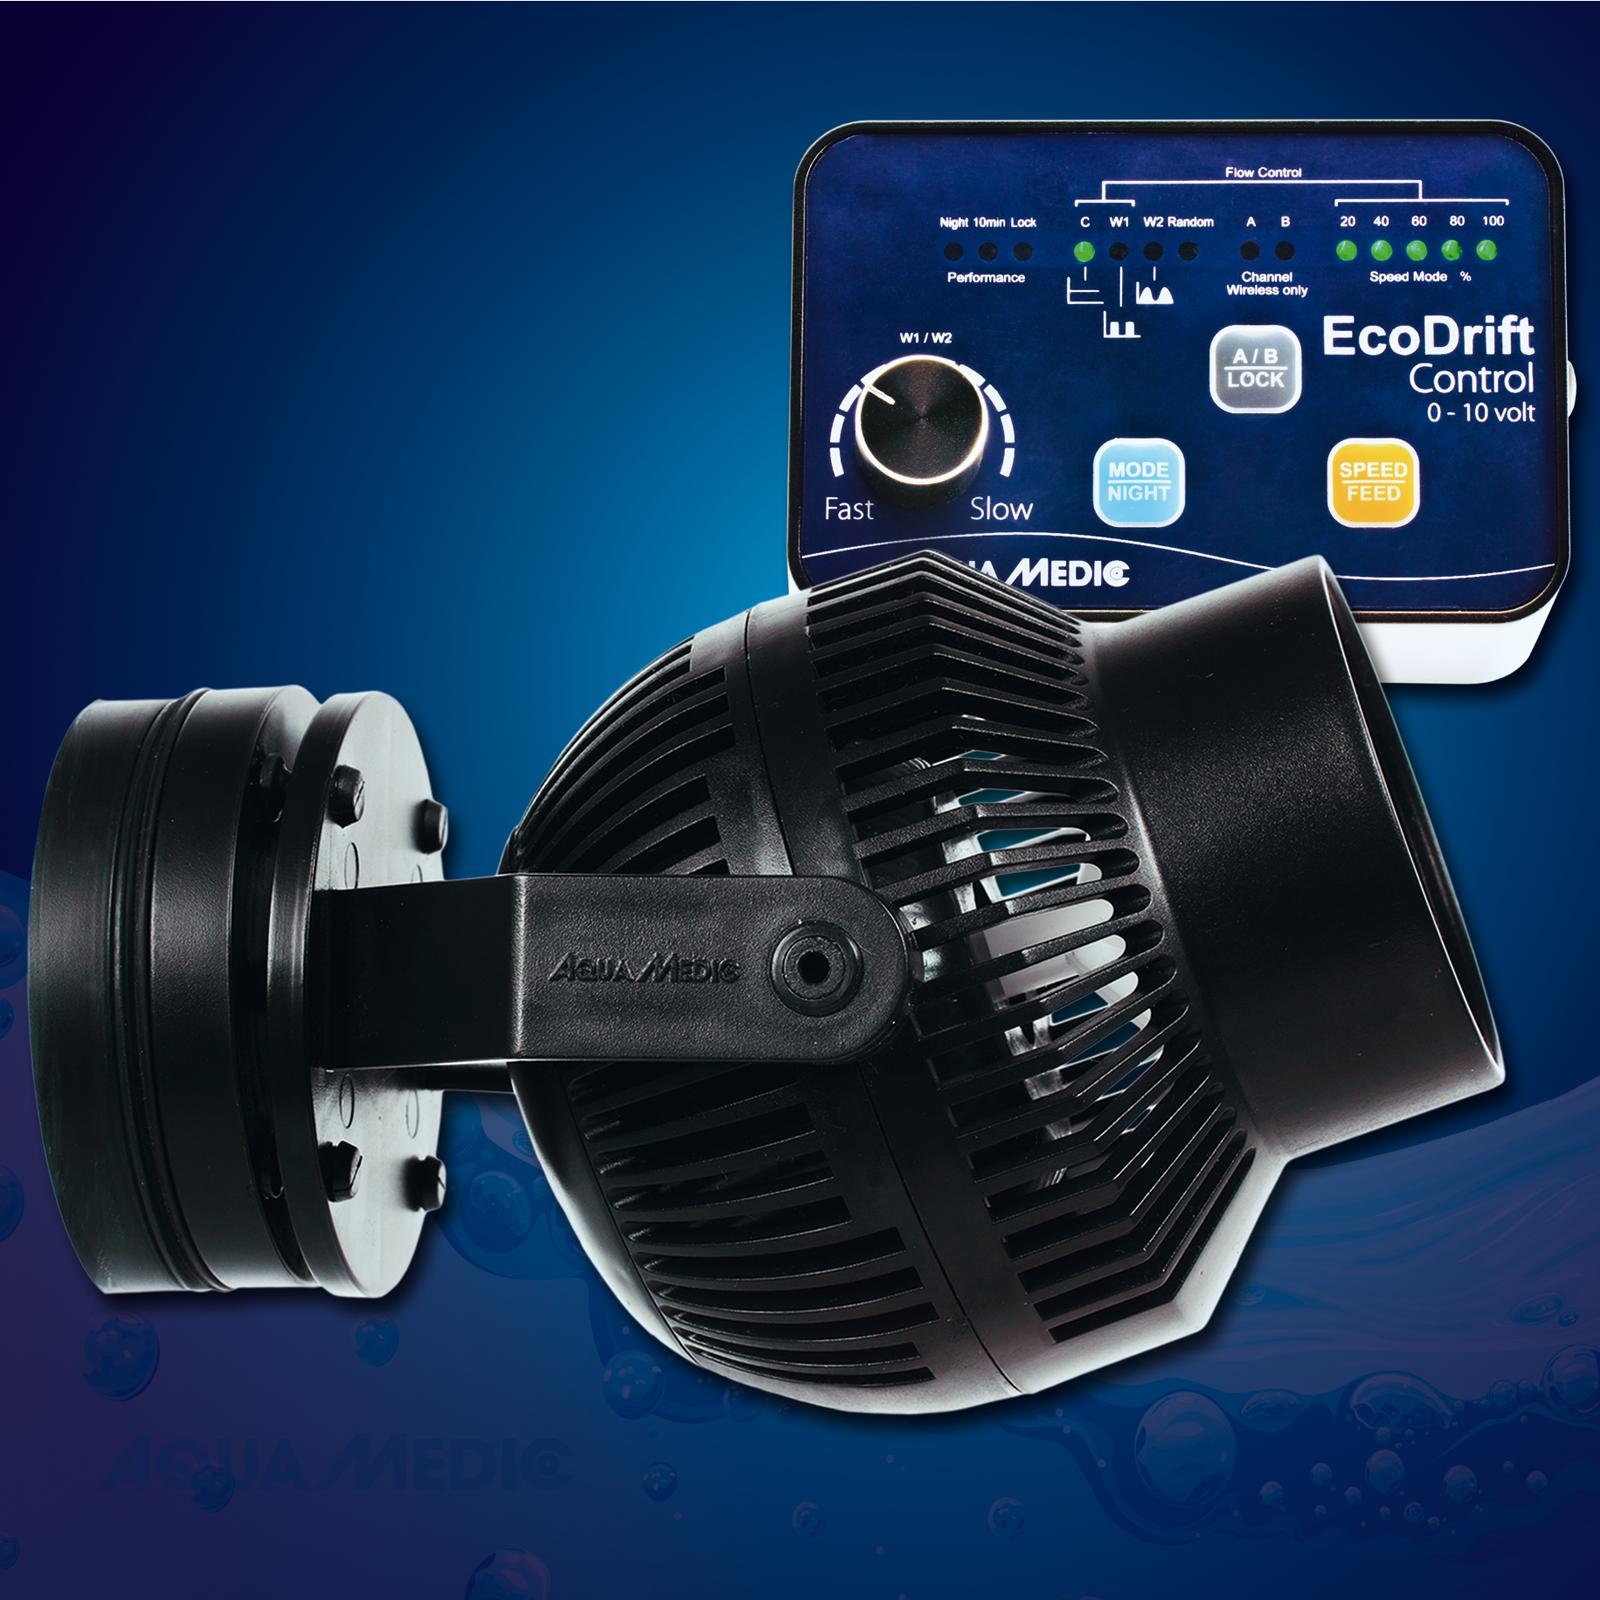 Aquamedic Ecodrift 8.1 Wave Pump 800l